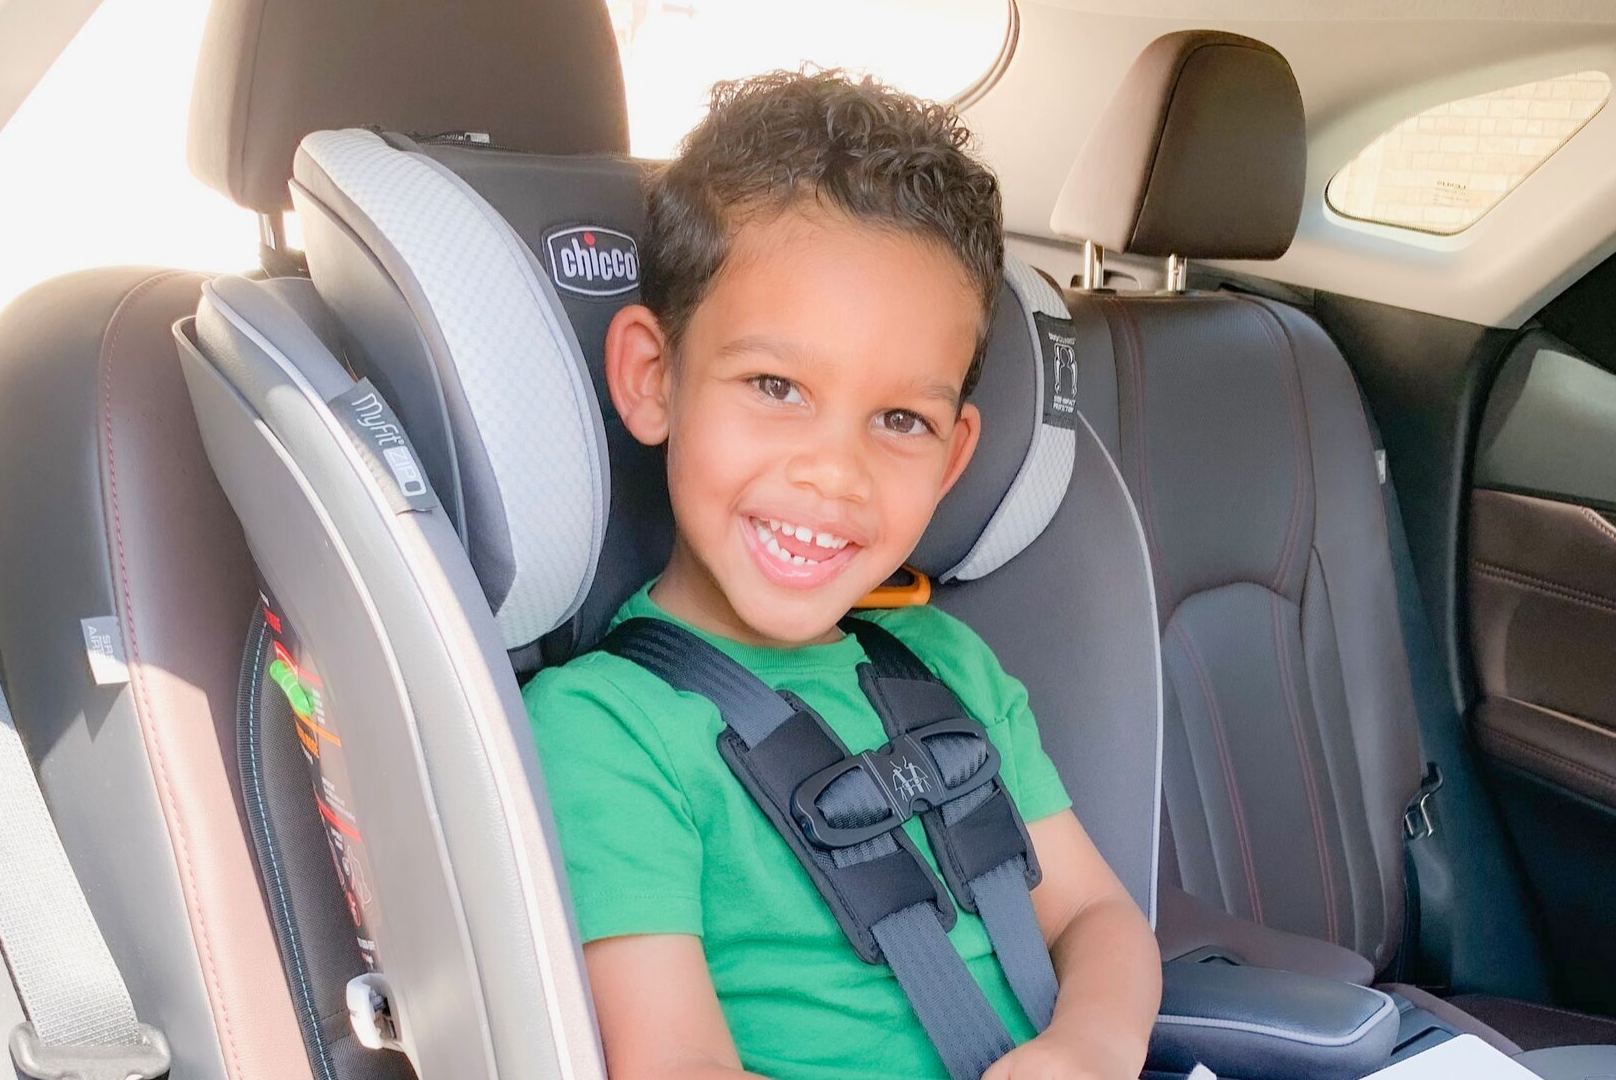 Chicco My Fit Zip Harness Booster Car Seat Review